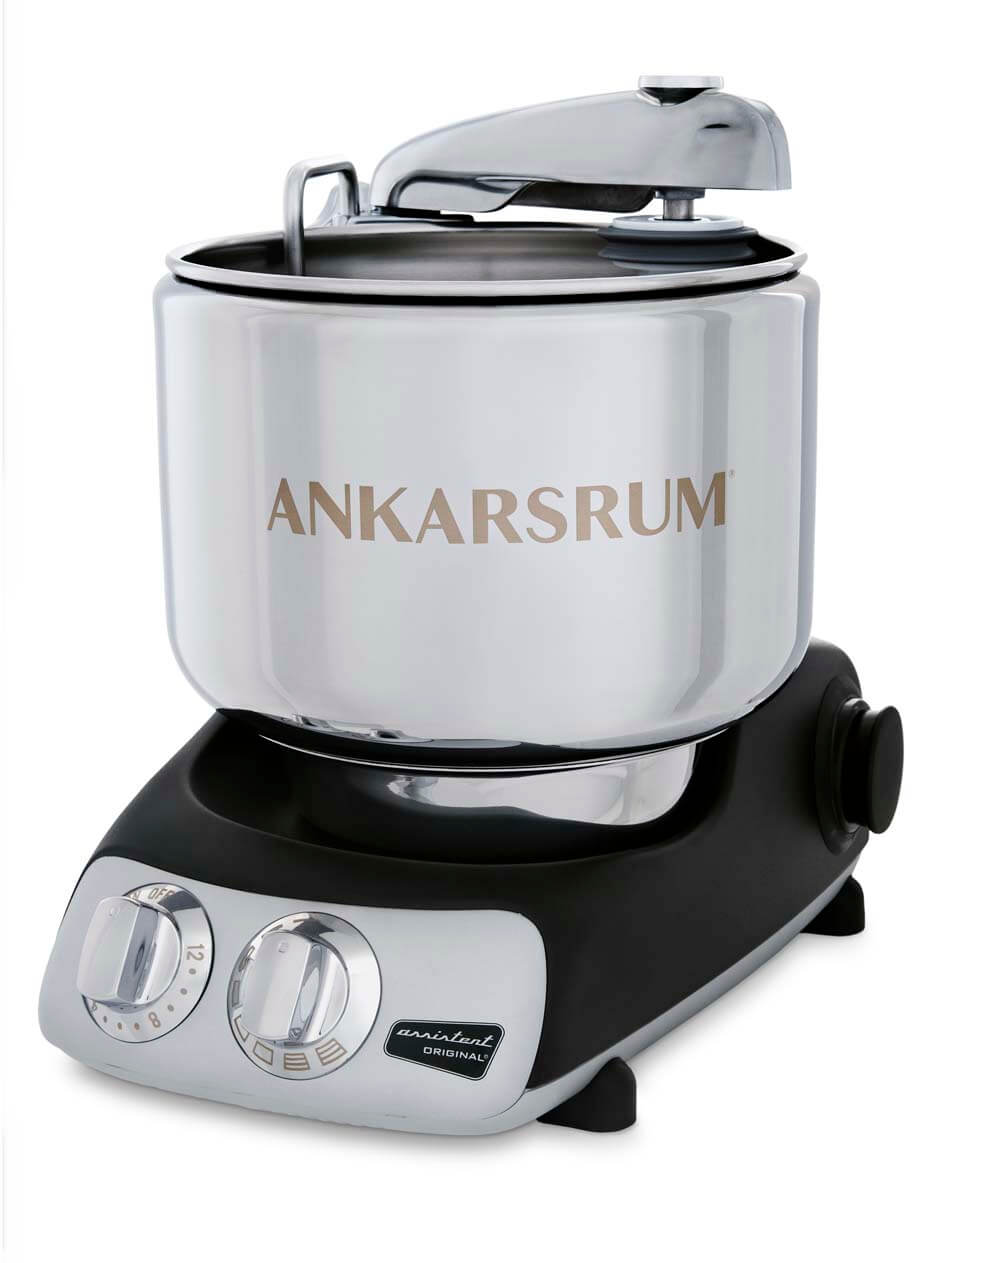 Ankarsrum Assistent Basis Black